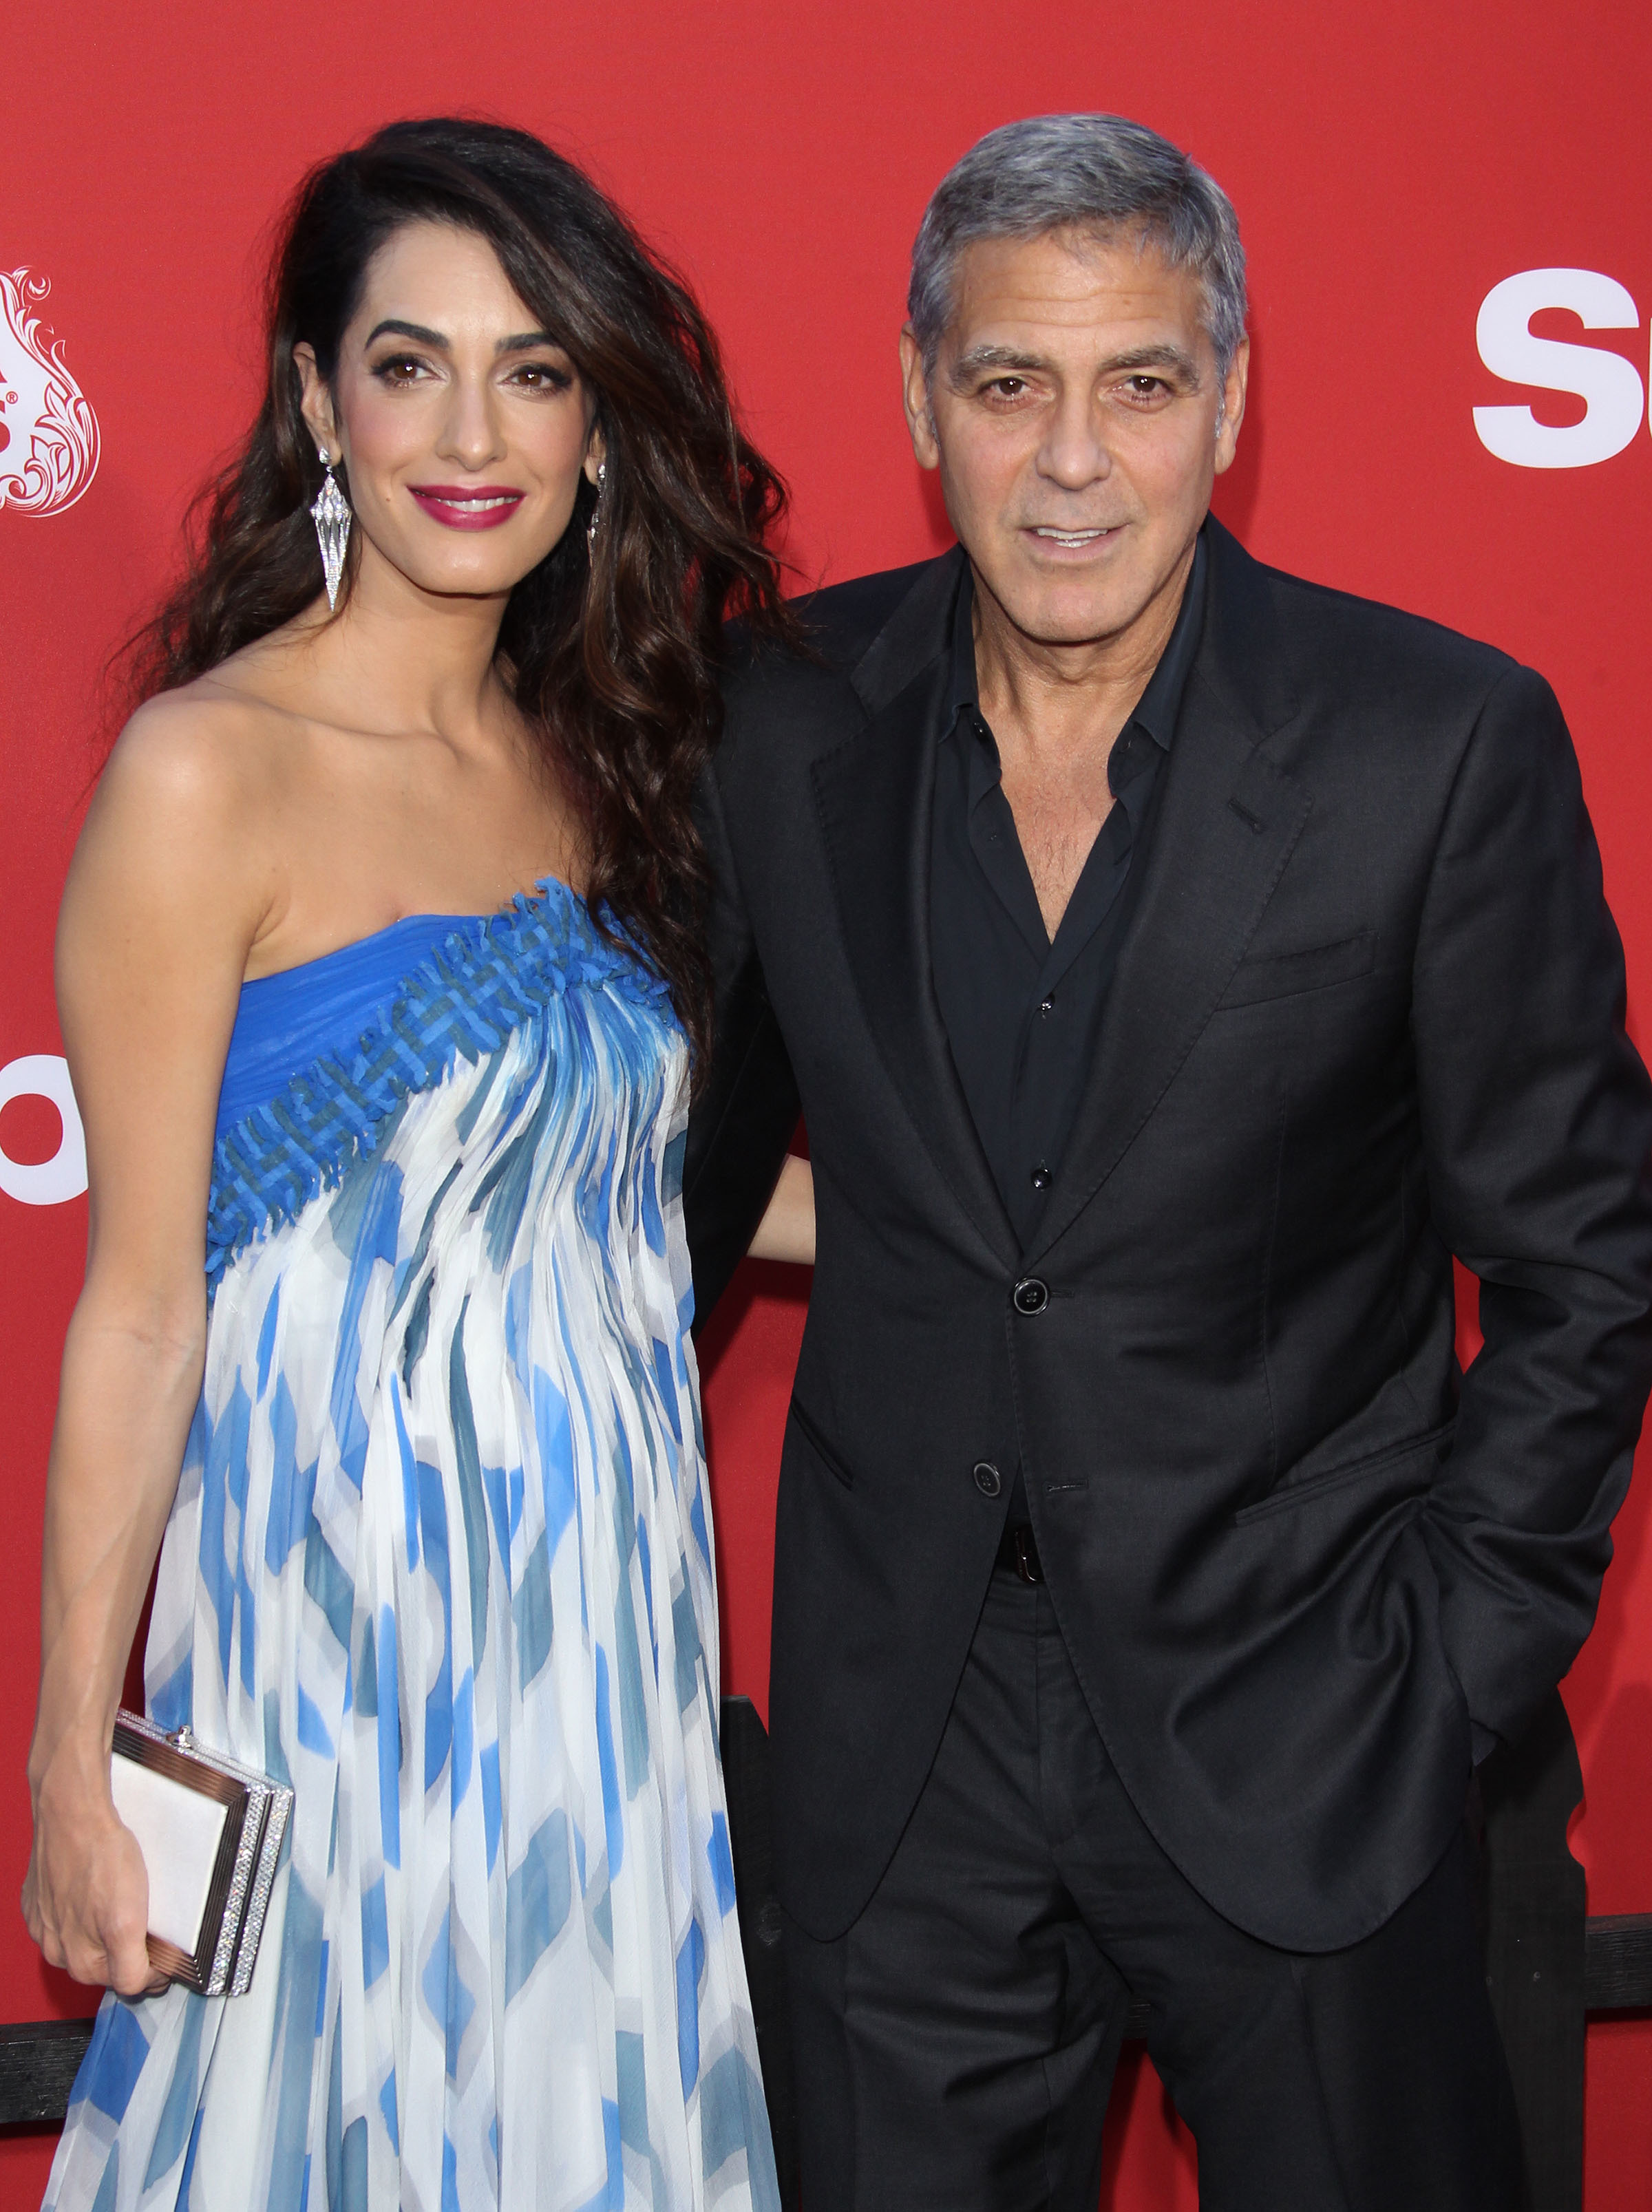 """Amal Clooney and George Clooney attend the premiere of """"Suburbicon"""" in Los Angeles on Oct. 22, 2017."""